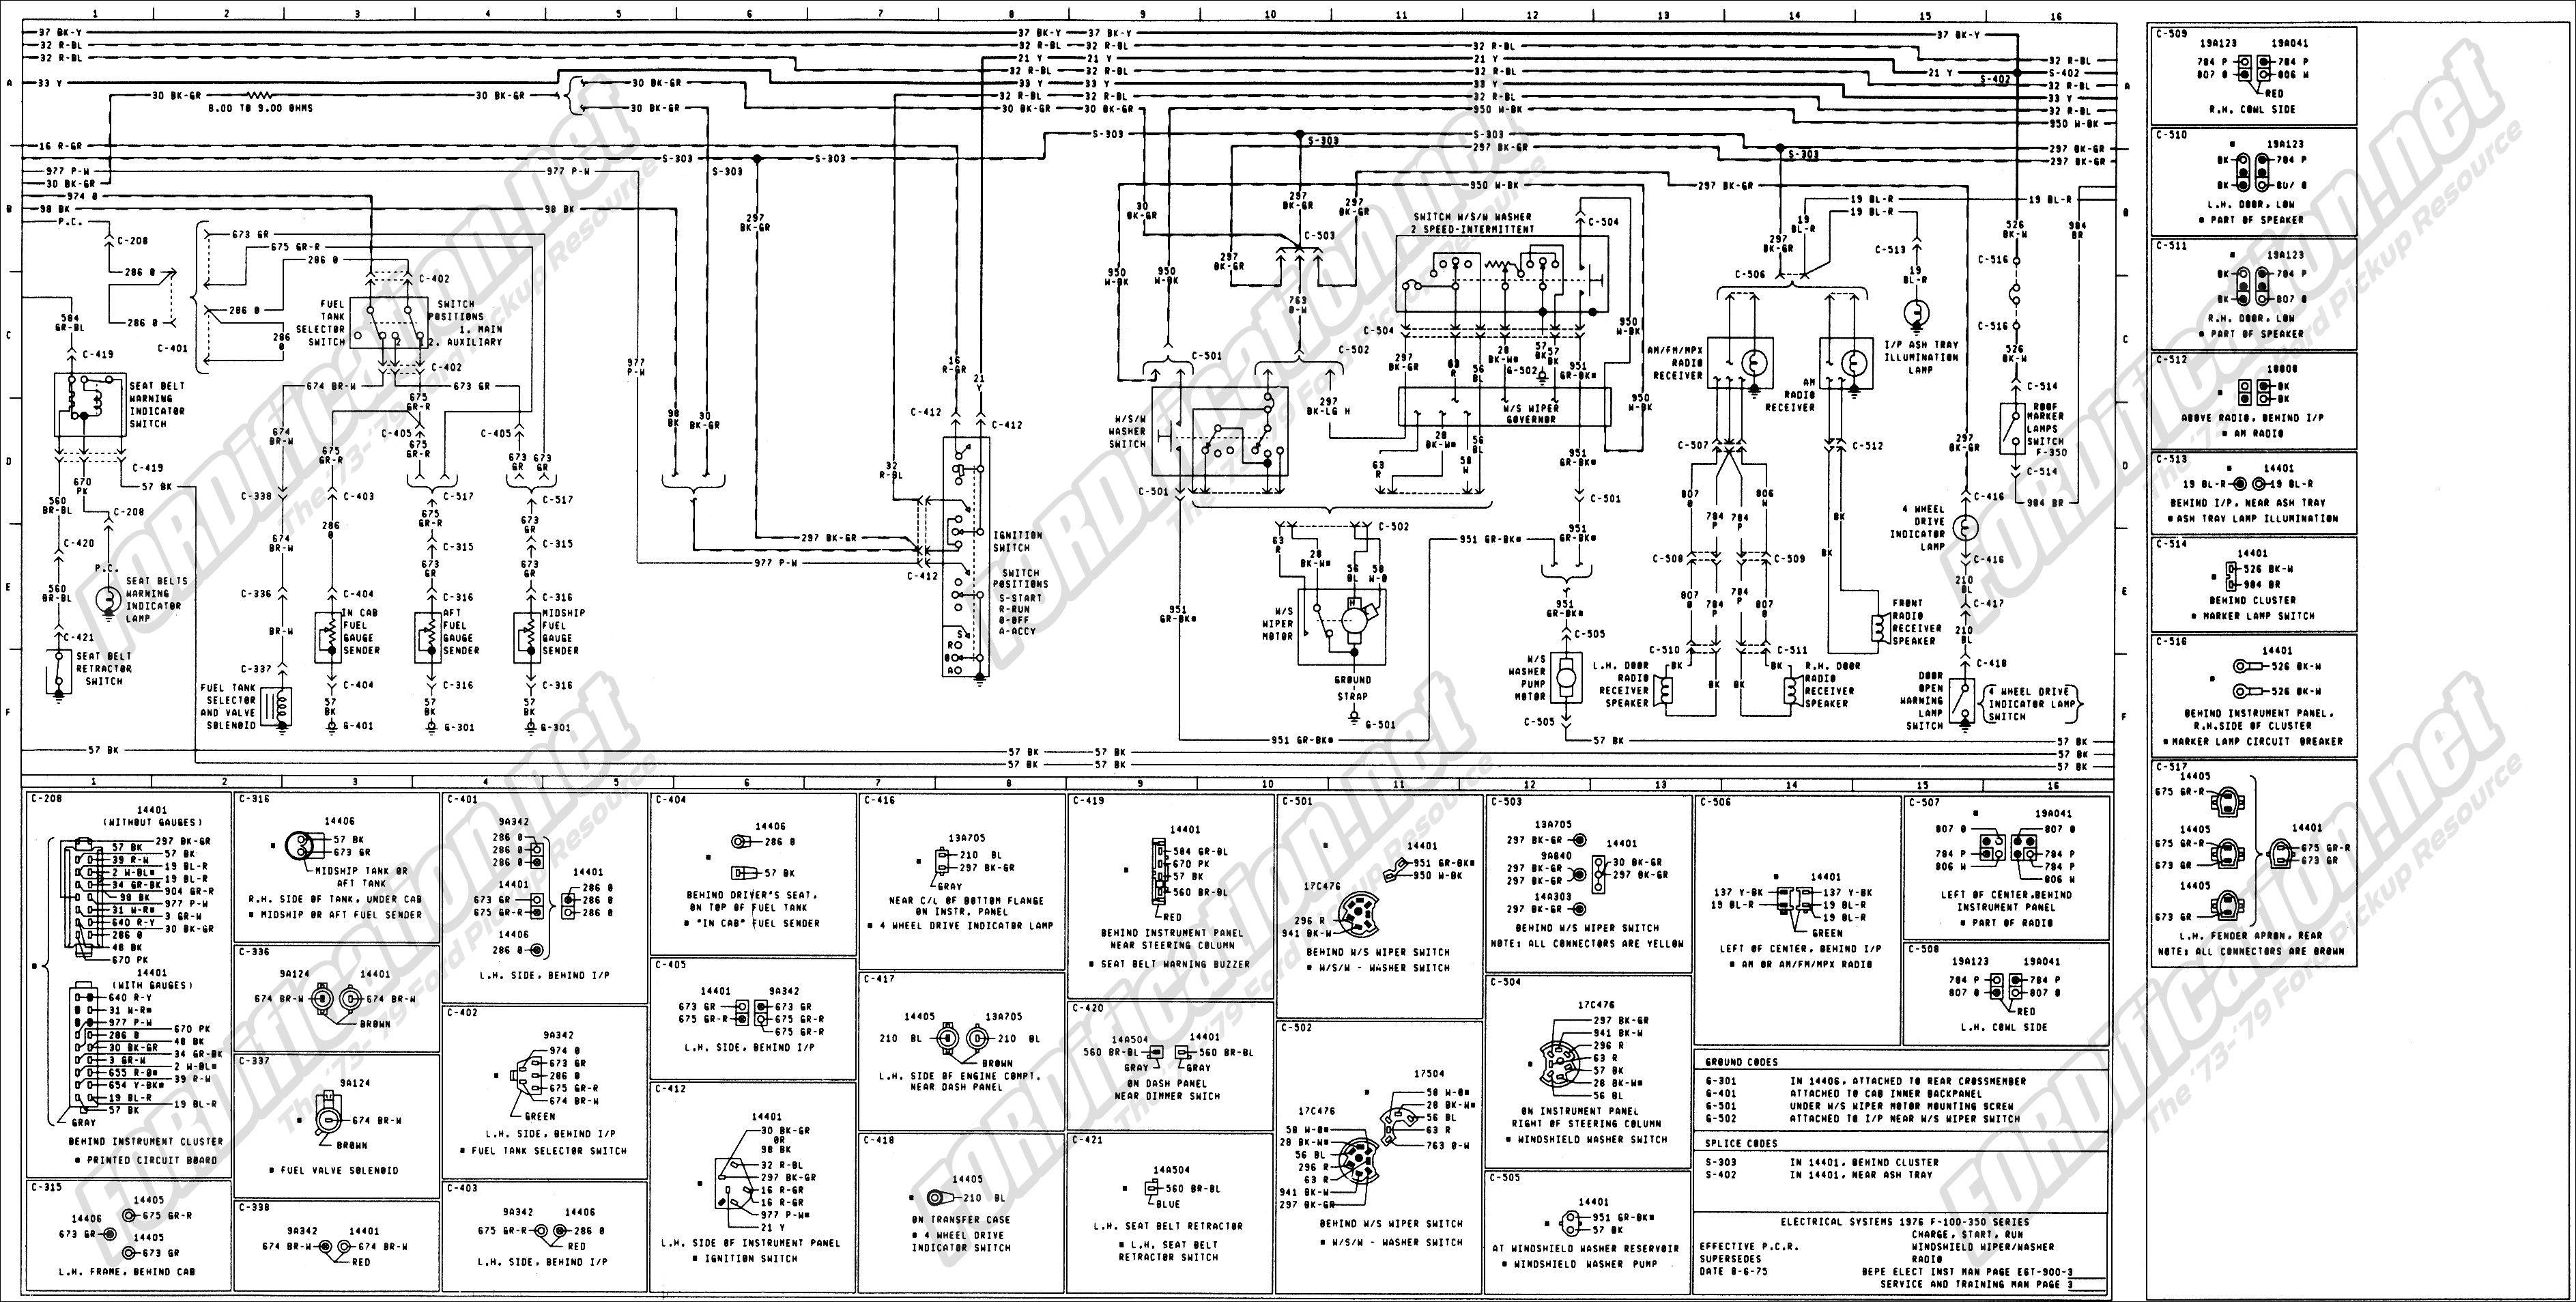 wiring diagram for 1999 ford f150 wiring diagram for 1979 ford f150 4wd